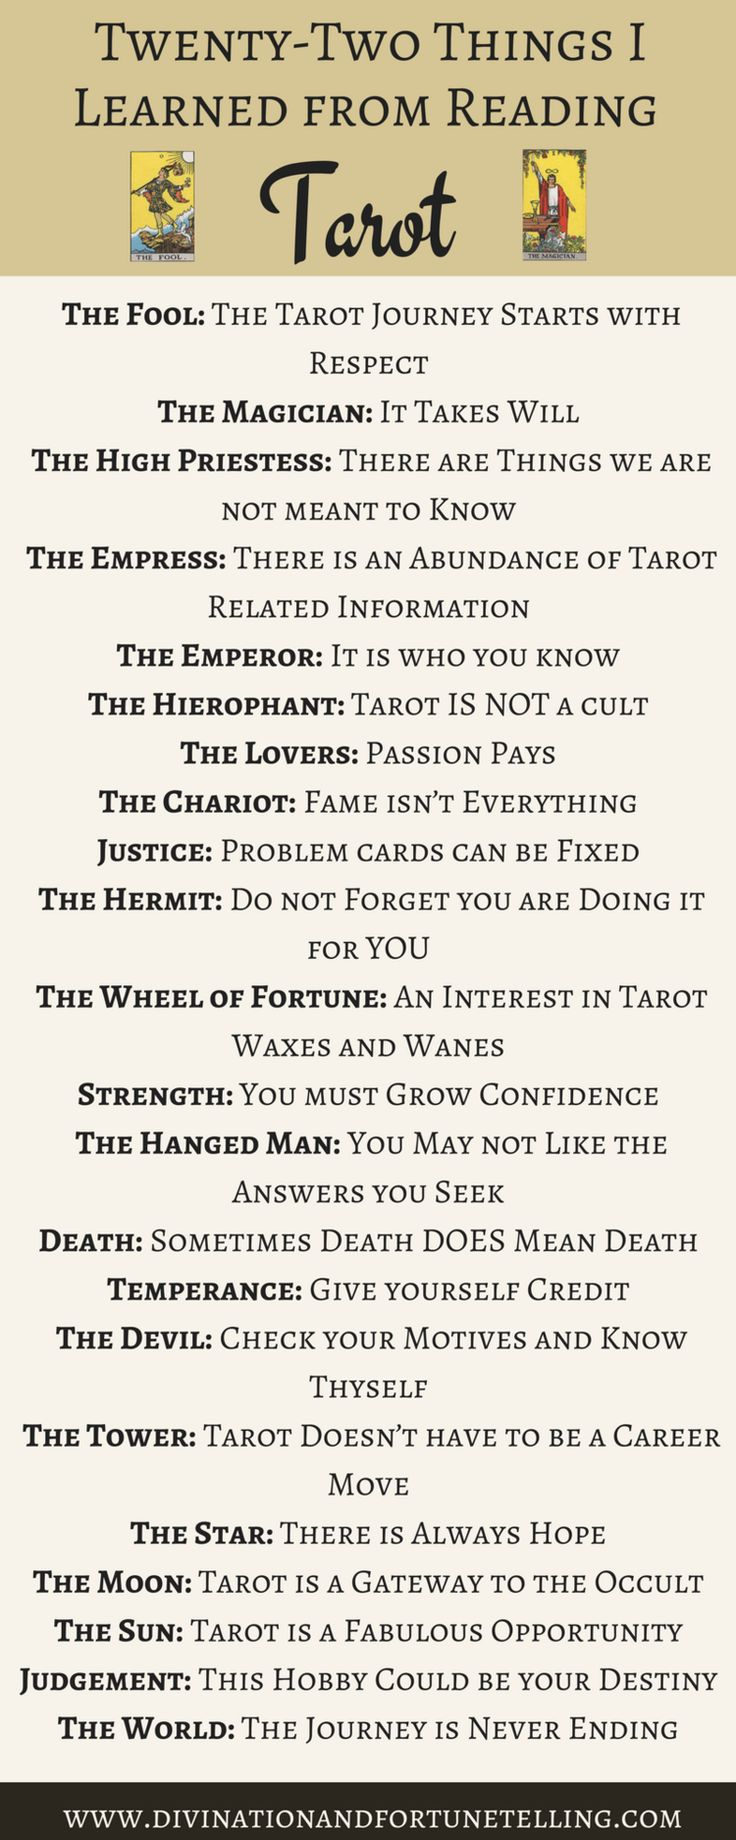 Illustration: The 22 things I learned from reading Tarot cards inspired by the major arcana. When I was a beginner, although I was exposed to divination through being a Romany Gypsy, there was a lot about Tarot which I didn't understand. Now I am used what I have learned to give tips to other would be fortune tellers who are just learning how to read the cards whether thats to make predictions about love, and money or for healing. Cards used in this image are the rider waite smith...